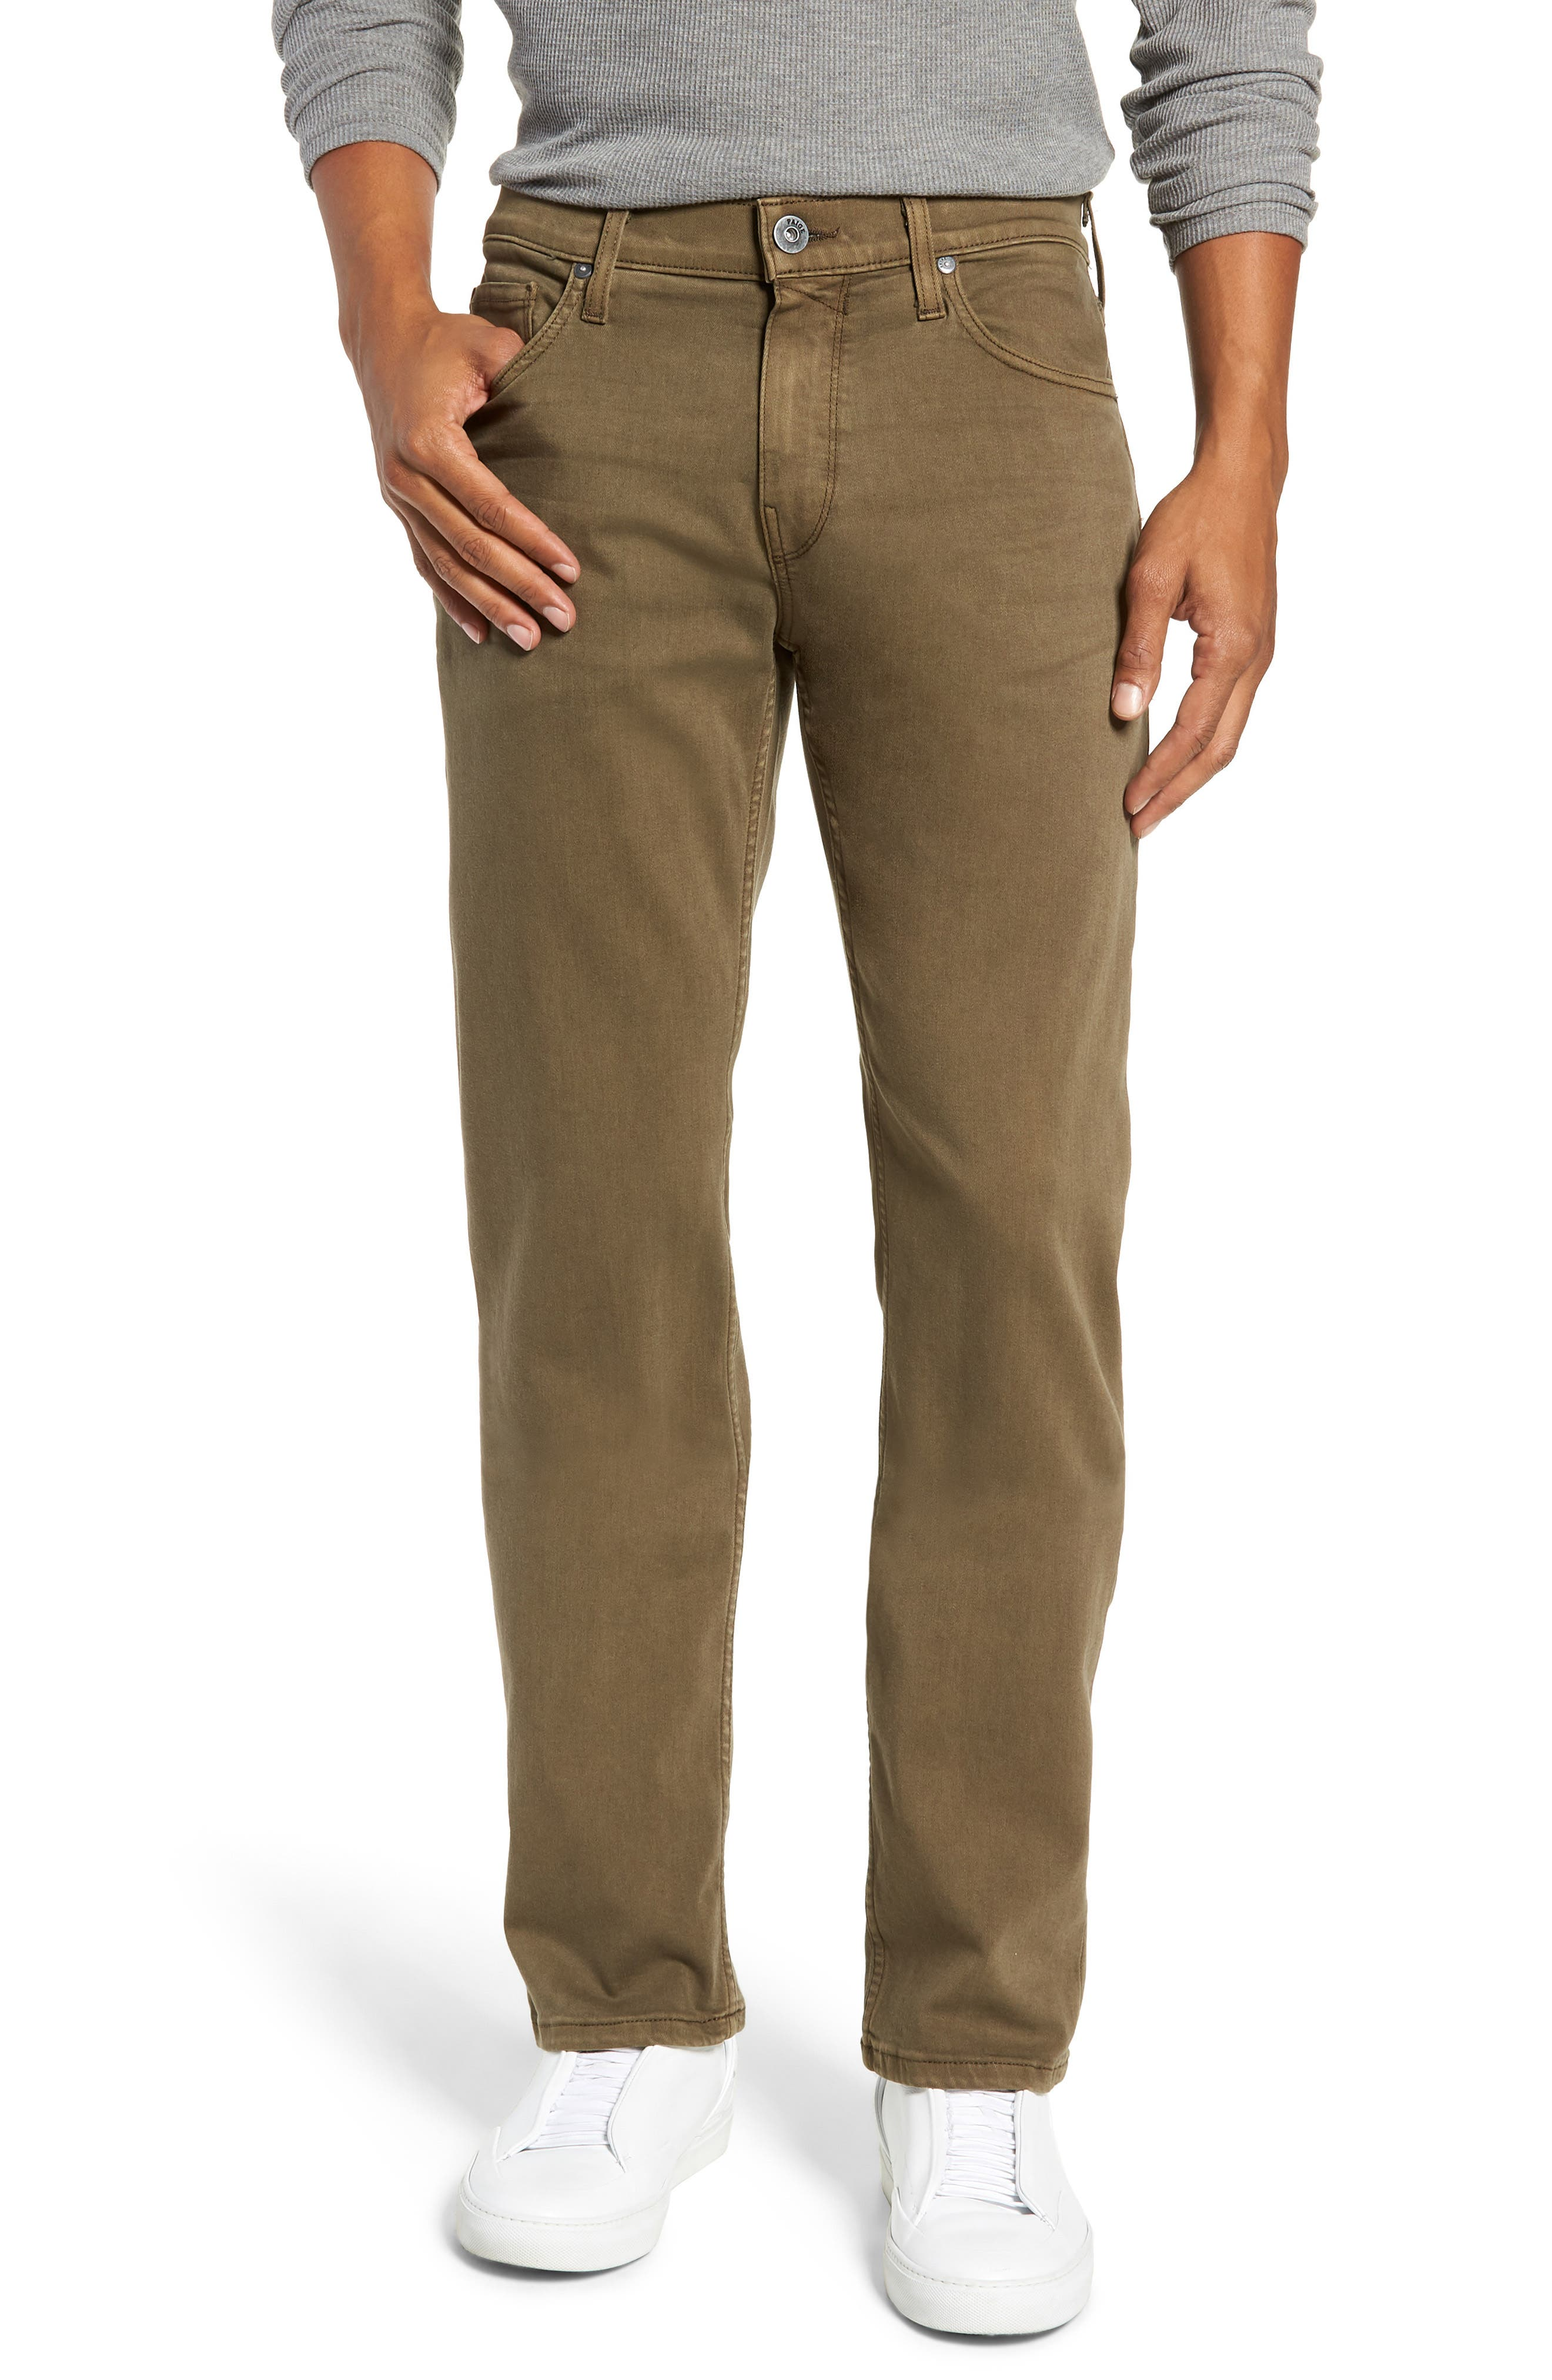 Transcend - Normandie Straight Leg Jeans,                         Main,                         color, VINTAGE ARTICHOKE